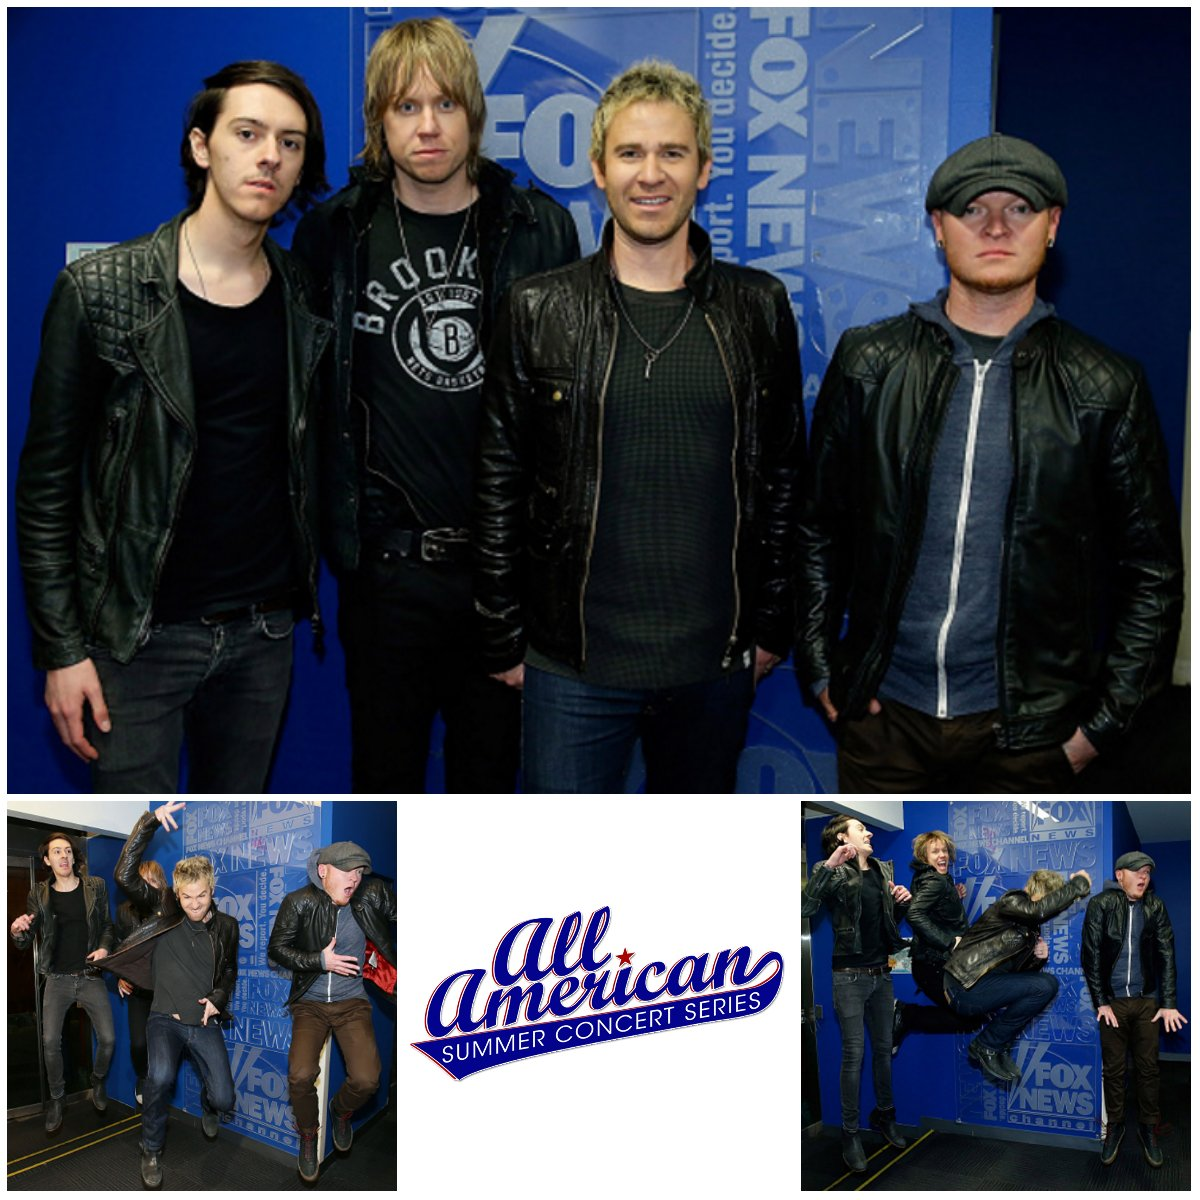 .@lifehouse is BACK! Join us in NYC this FRIDAY! Head to https://t.co/QXCEDiSHiP for all the details! #foxconcert https://t.co/hSbpcE6qw4